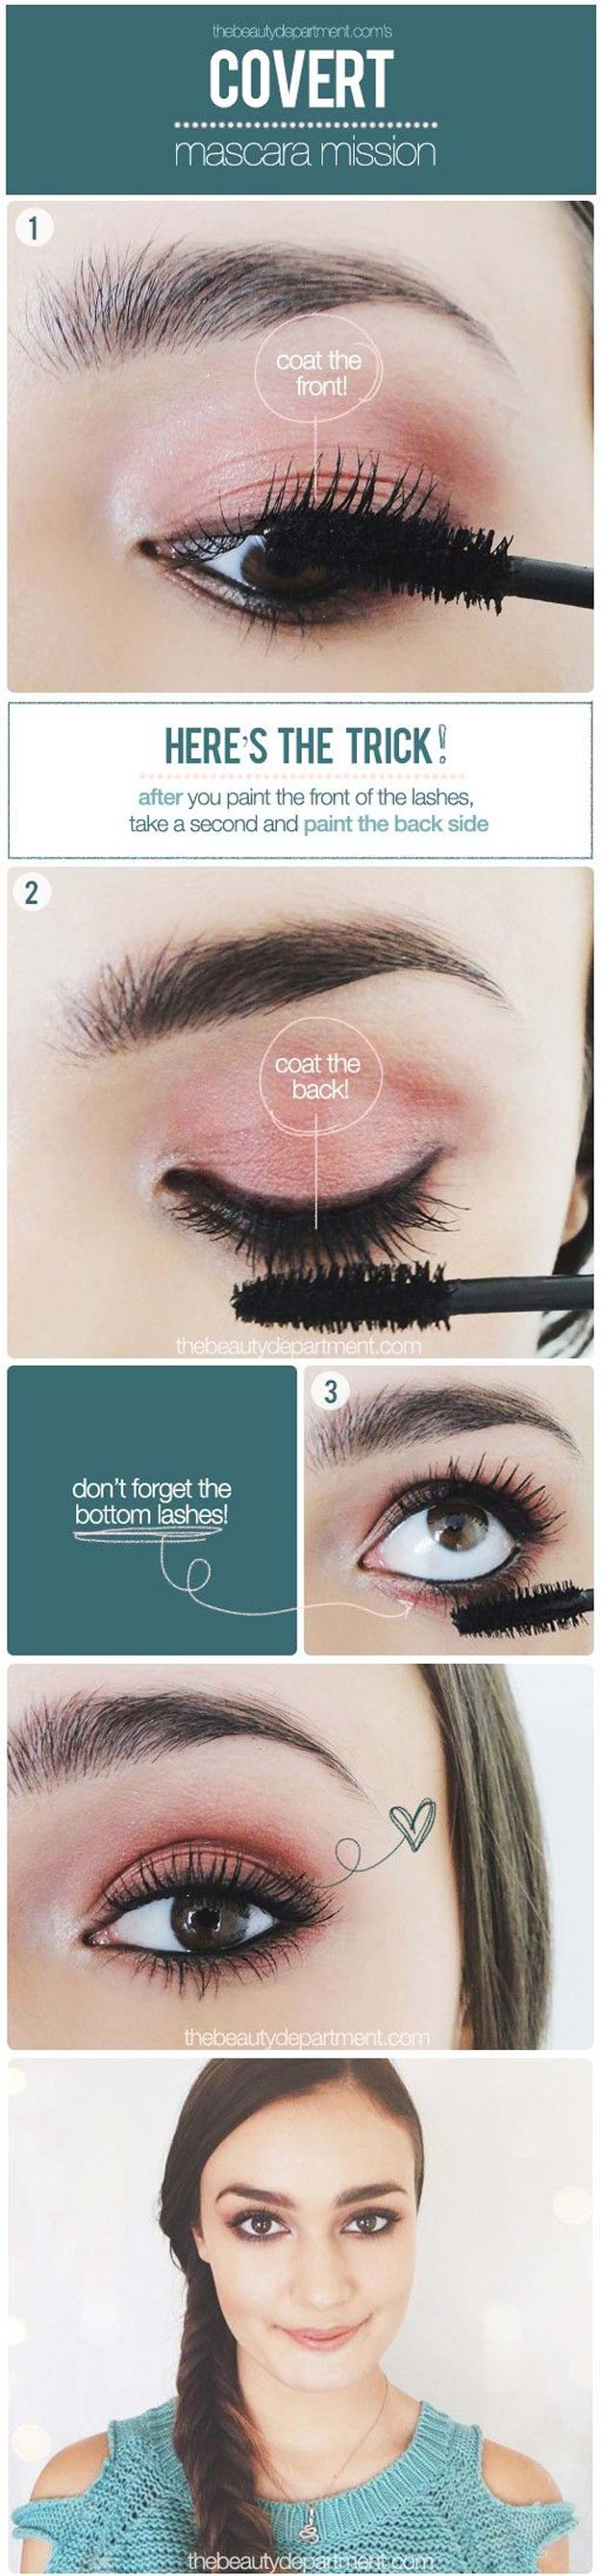 Best Makeup Tutorials for Teens -Thick Lashes - Easy Makeup Ideas for Beginners - Step by Step Tutorials for Foundation, Eye Shadow, Lipstick, Cheeks, Contour, Eyebrows and Eyes - Awesome Makeup Hacks and Tips for Simple DIY Beauty - Day and Evening Looks http://diyprojectsforteens.com/makeup-tutorials-teens